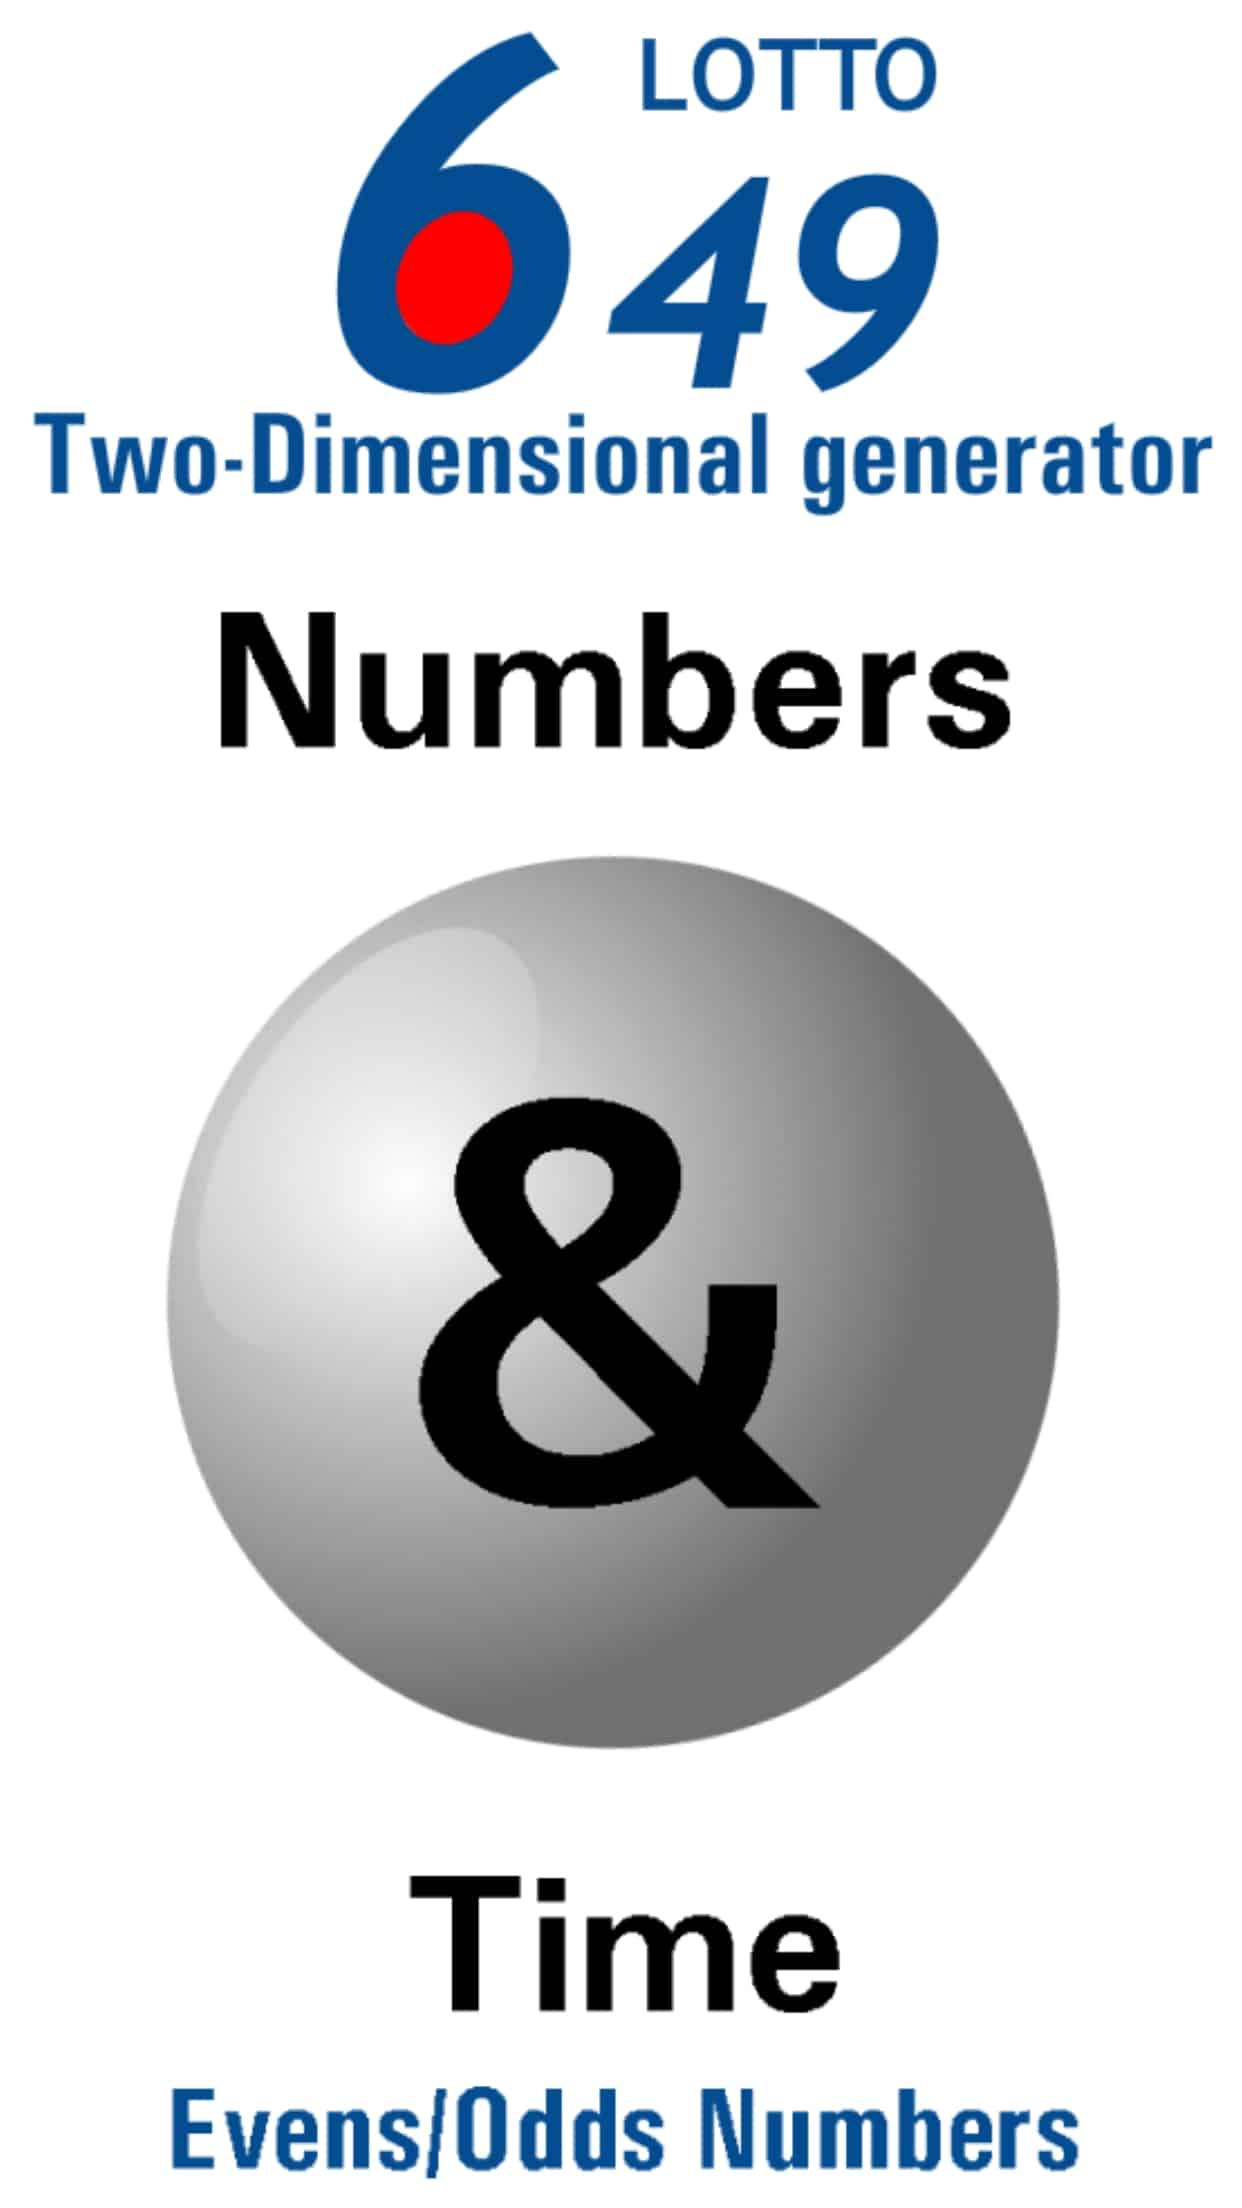 Lotto 649 Winning Numbers